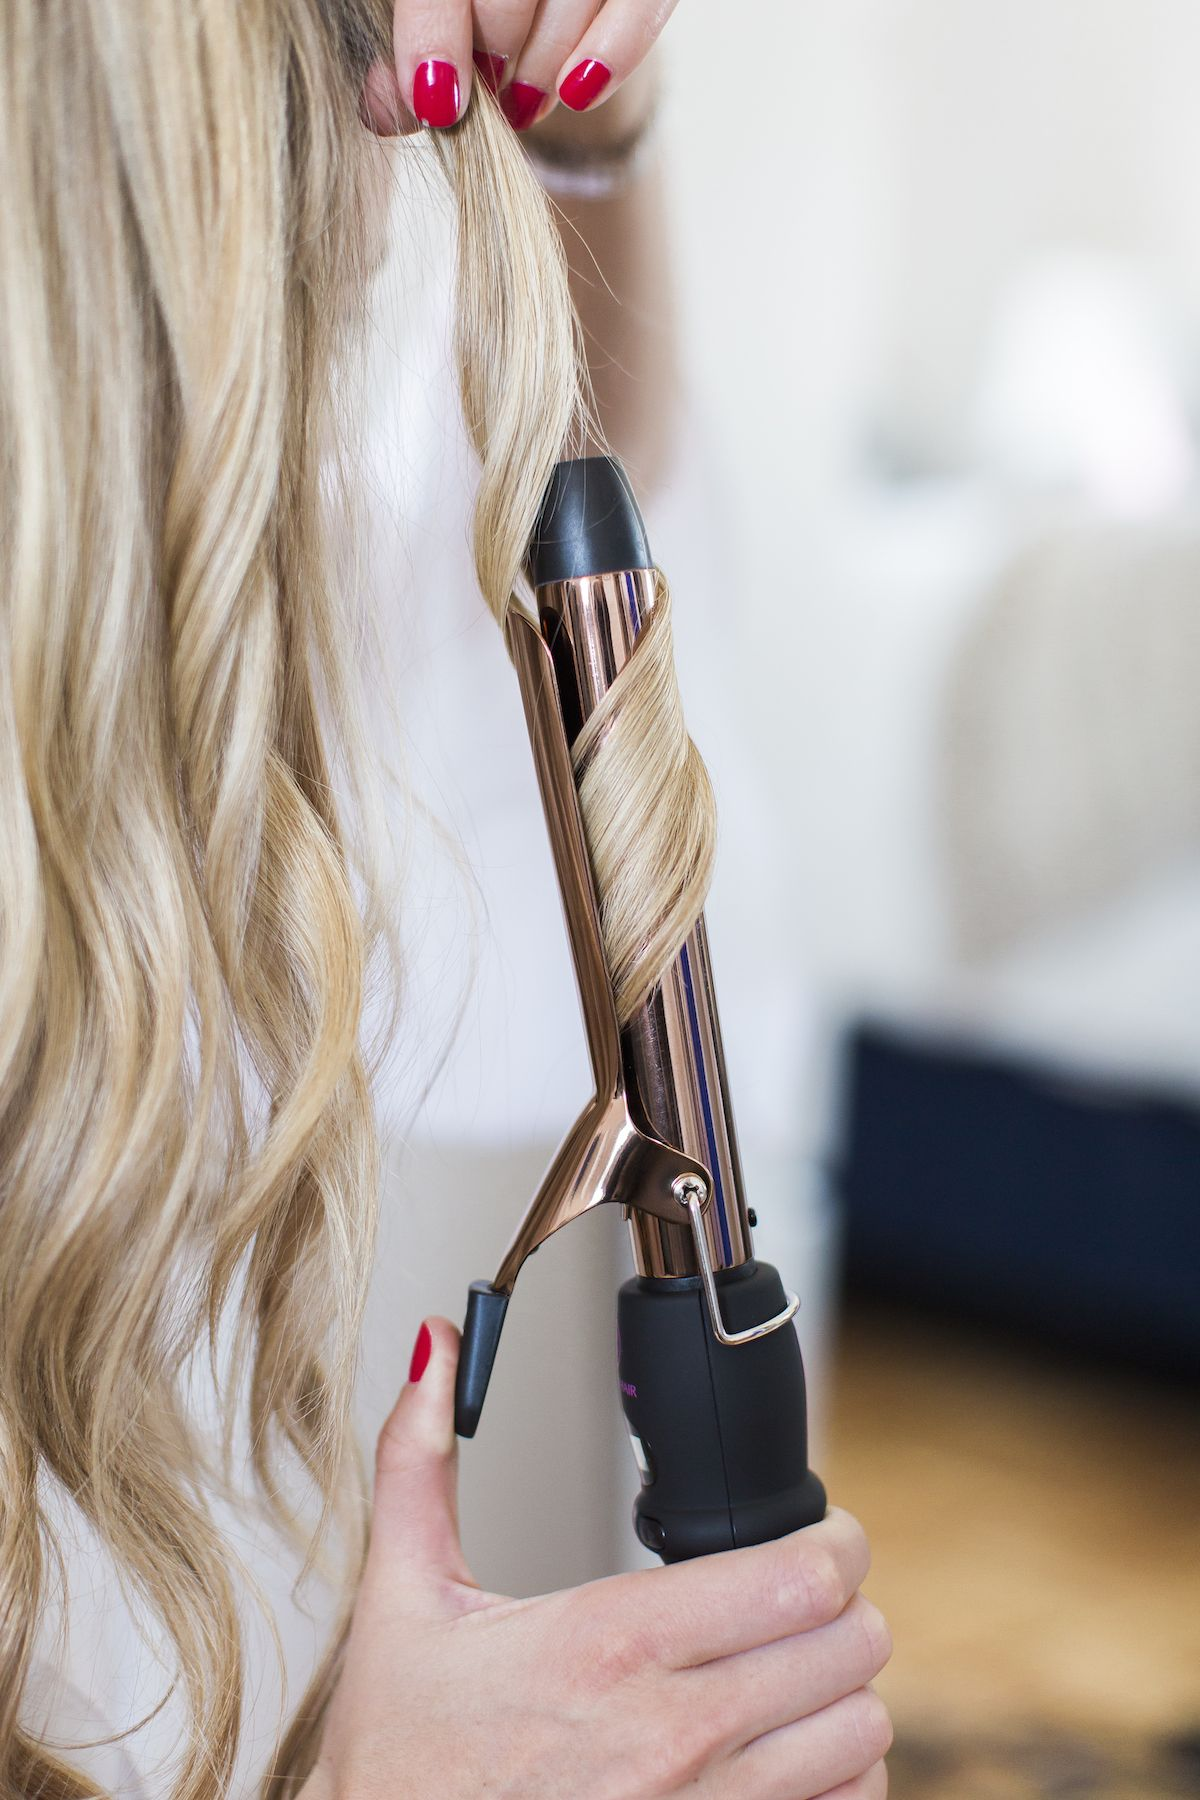 Tutorial How To Style Perfect Loose Waves Using A 1 Inch Clamp Curling Iron Curls For Long Hair Loose Waves Long Hair How To Curl Your Hair